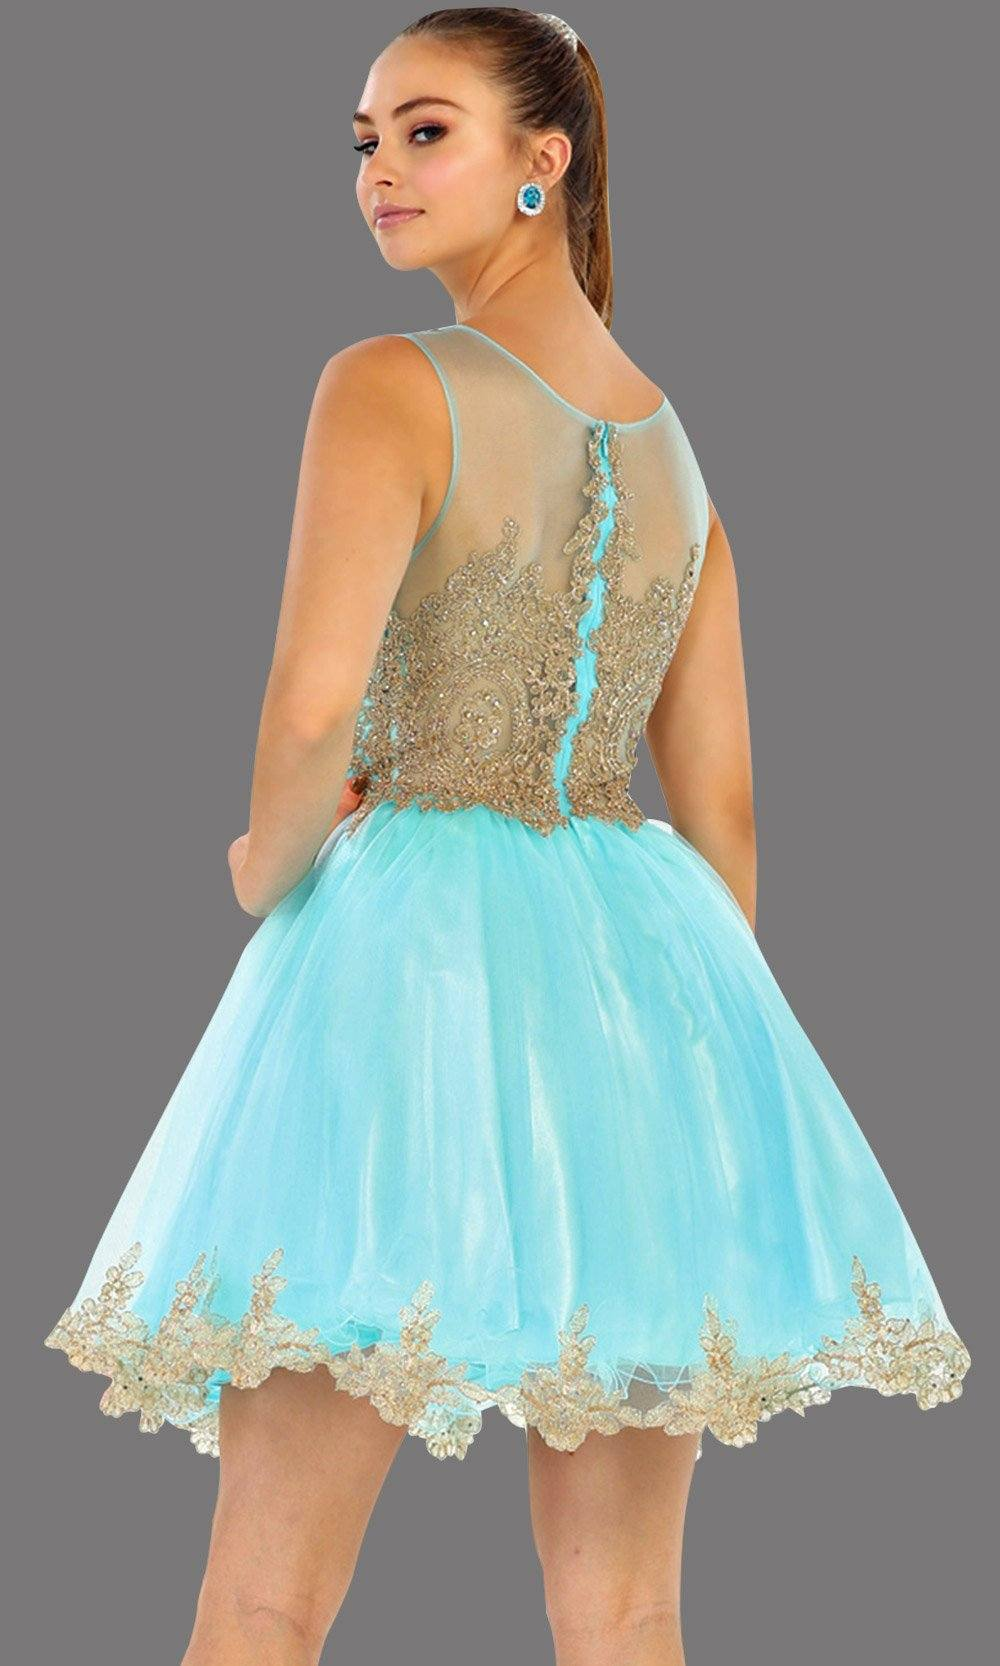 Back of short high neck aqua grade 8 grad puffy dress with gold lace. This light blue grade 8 graduation short and pretty. Can be worn as short prom dress, quinceanera damas, bah mitzvah, sweet 16, or confirmation. Avail in plus size